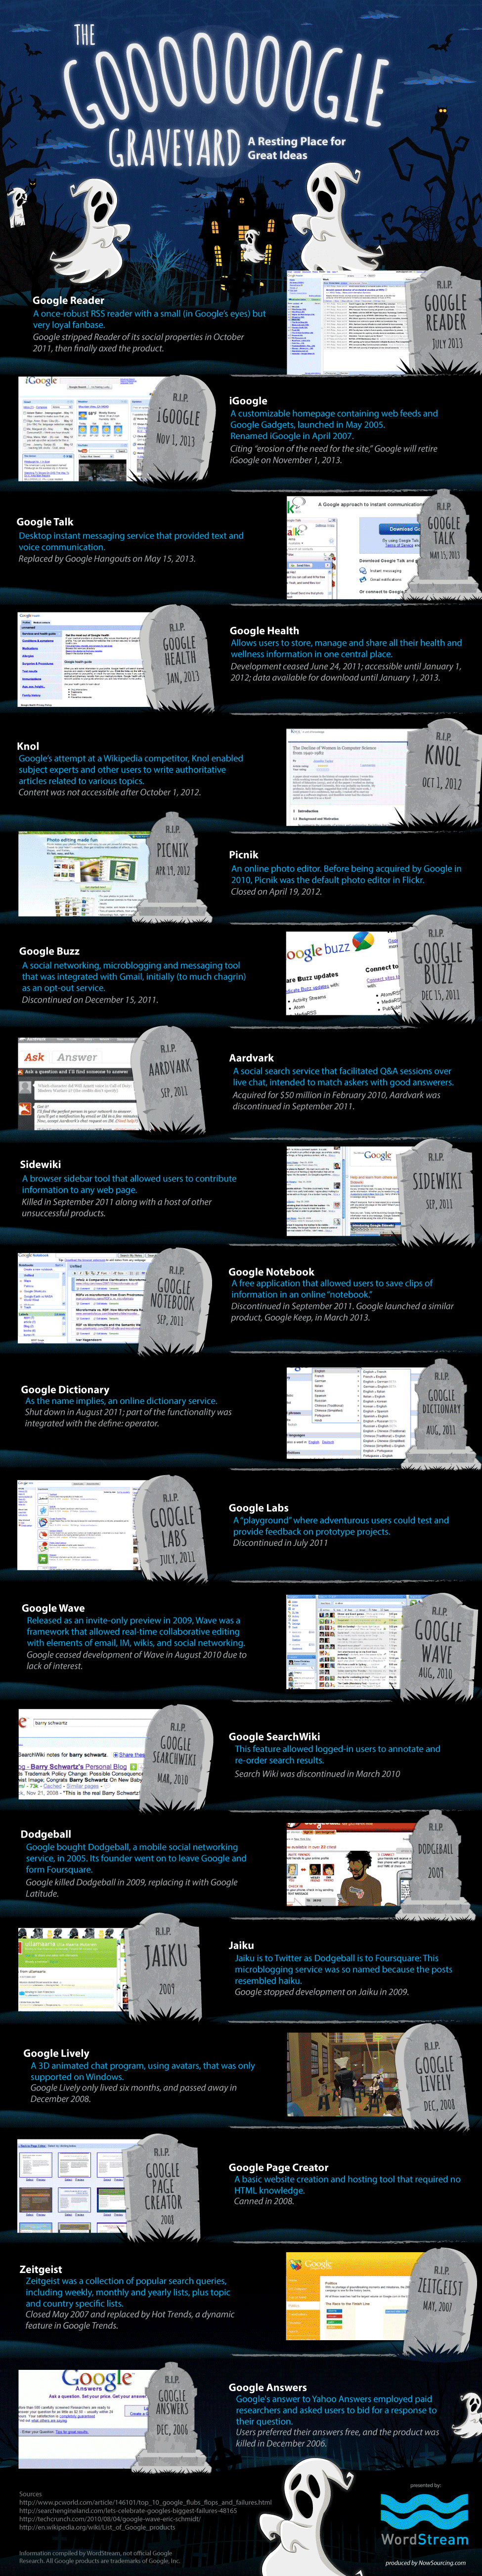 Google Graveyard: Discontinued Google Products and Services